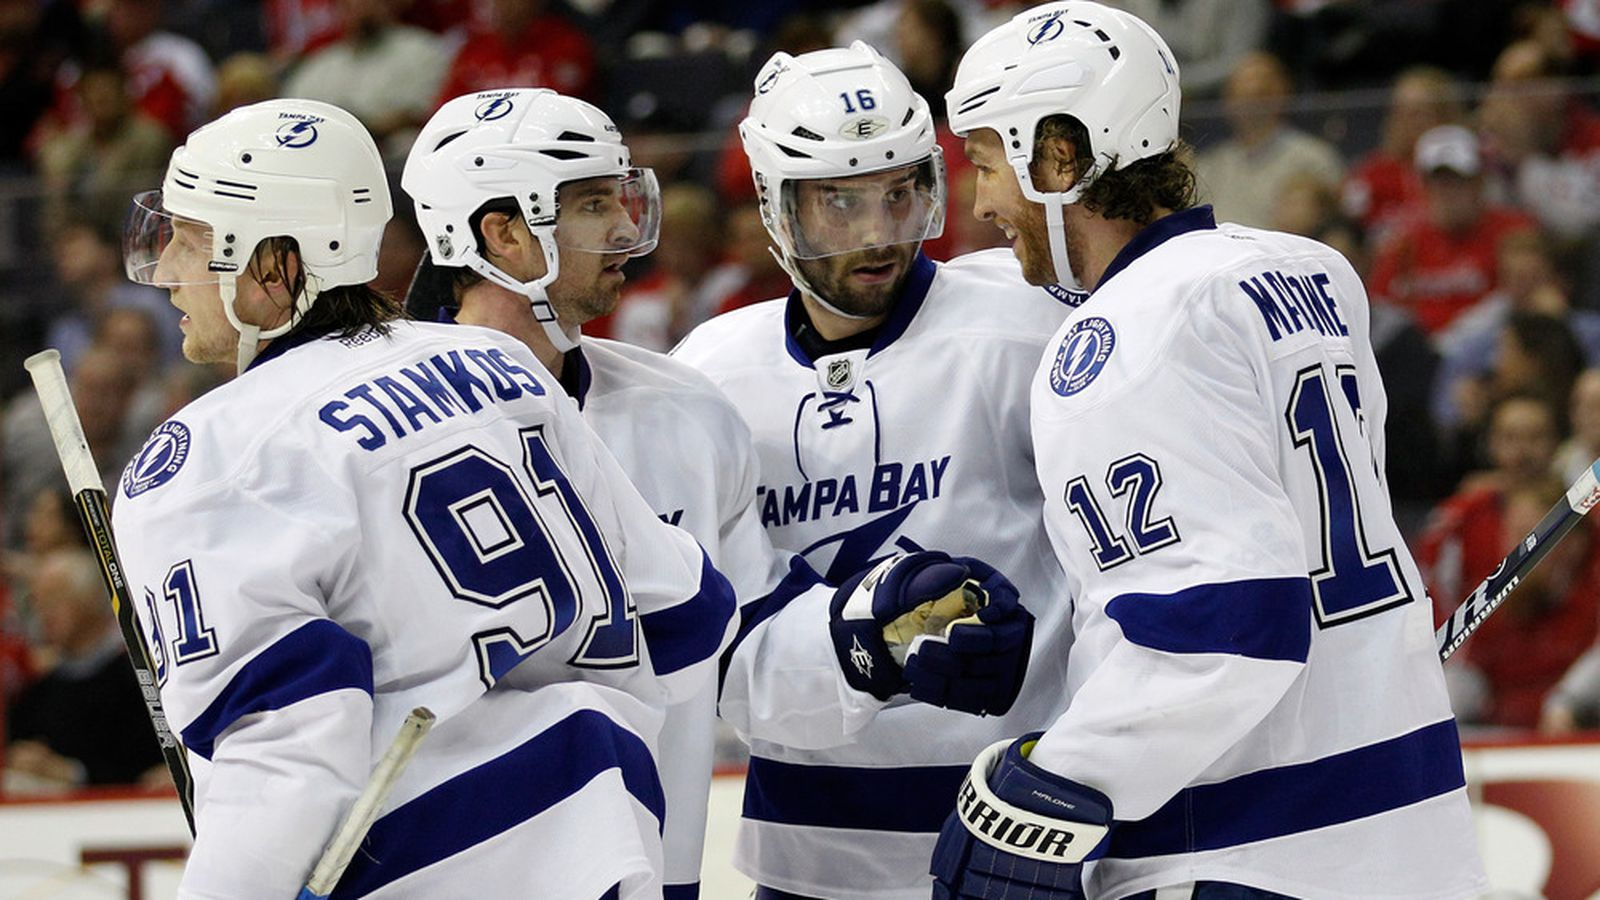 2013 14 Tampa Bay Lightning Season Preview Part 6 Line Projections And Depth